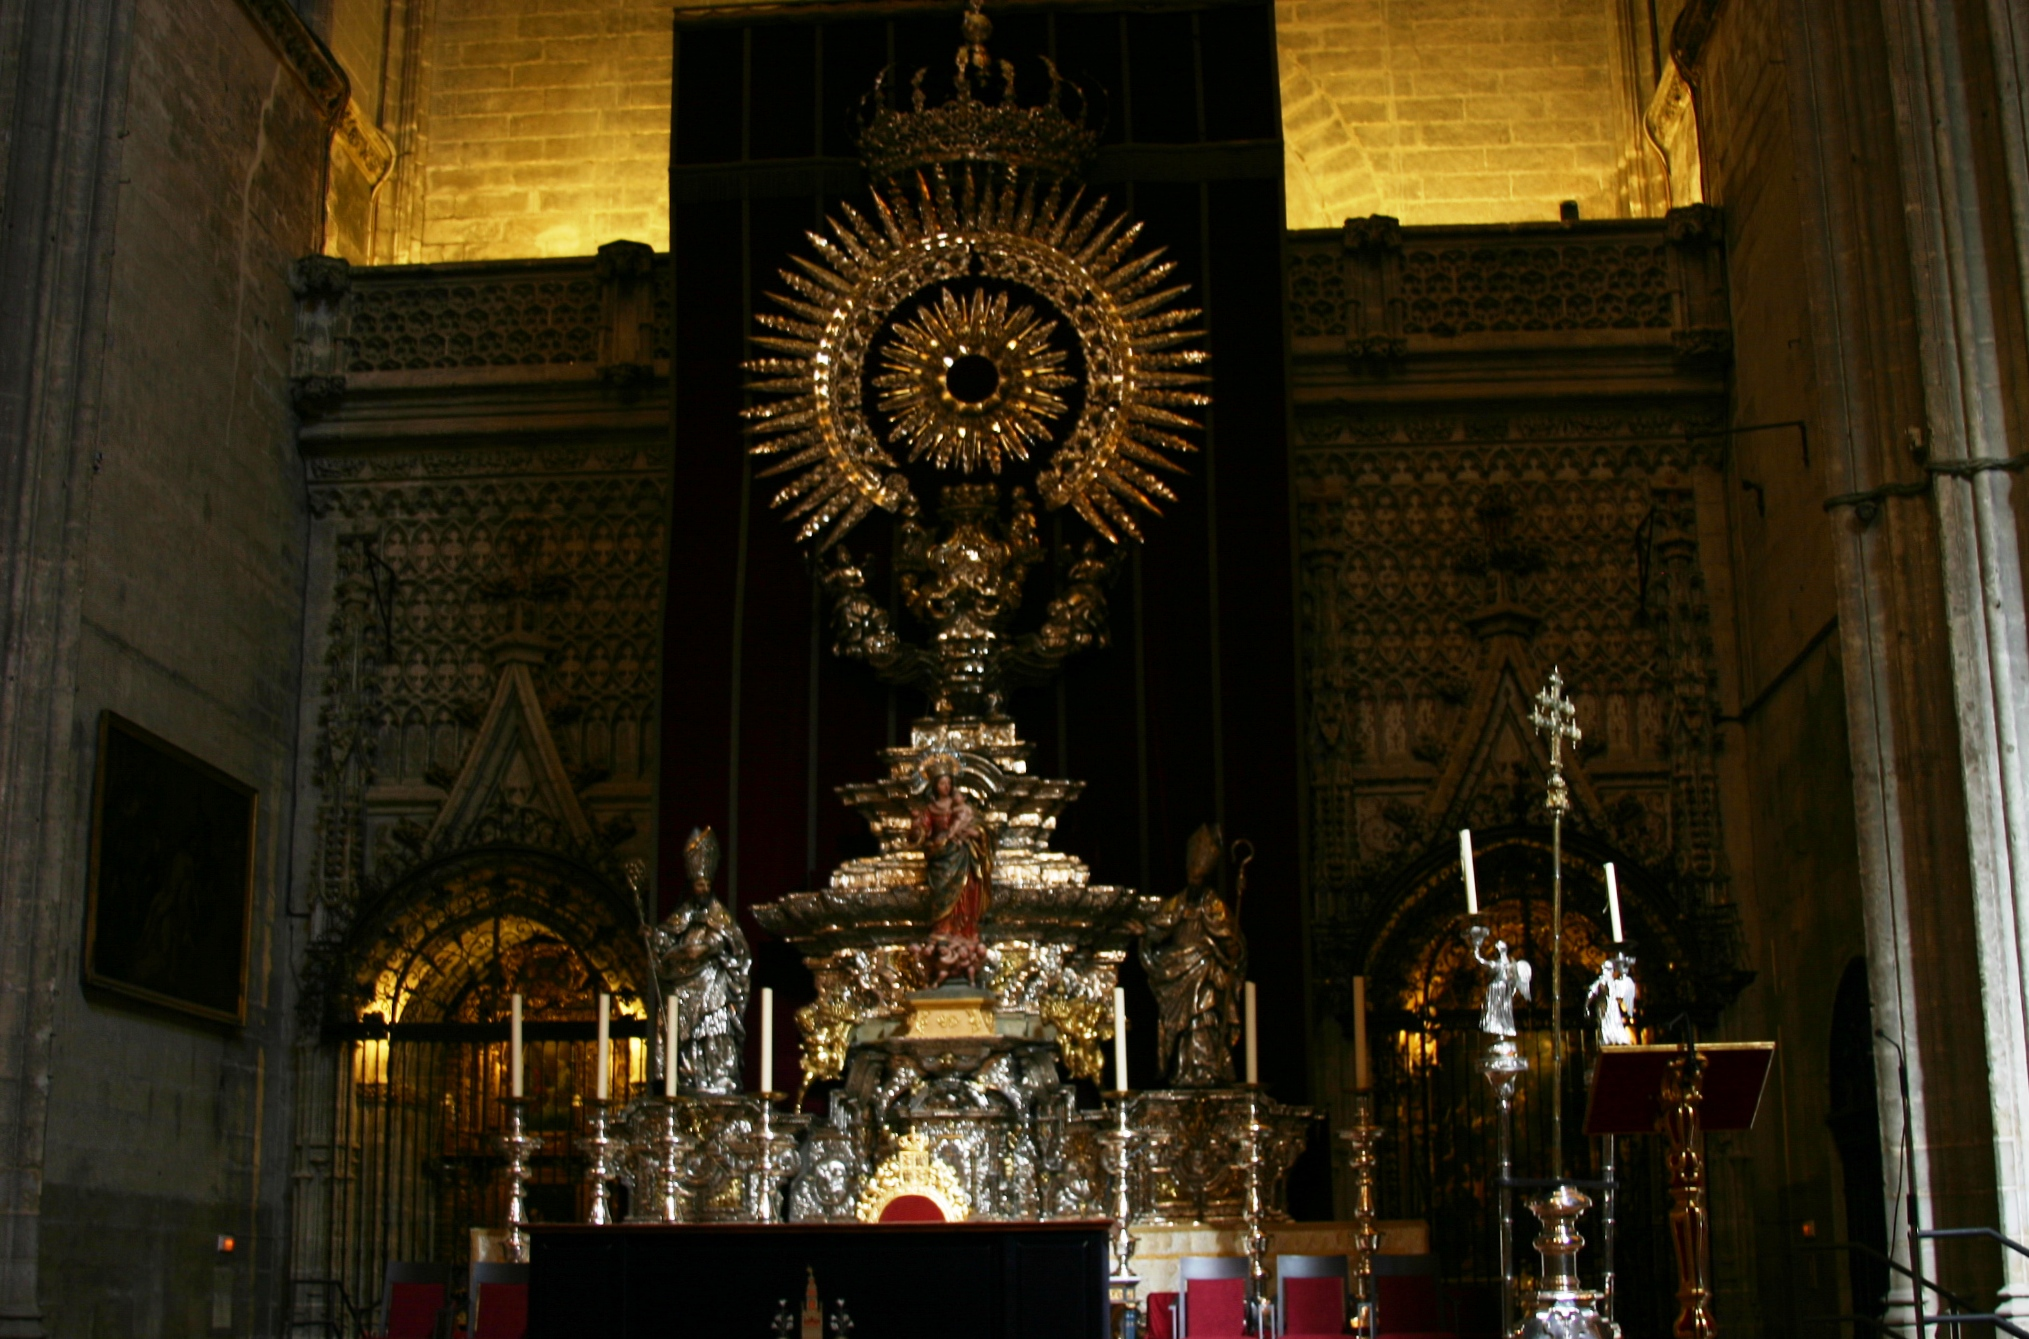 https://commons.wikimedia.org/wiki/File:Monstrance_for_the_Holy_Friday_-_Cathedral_of_Seville_(3).JPG